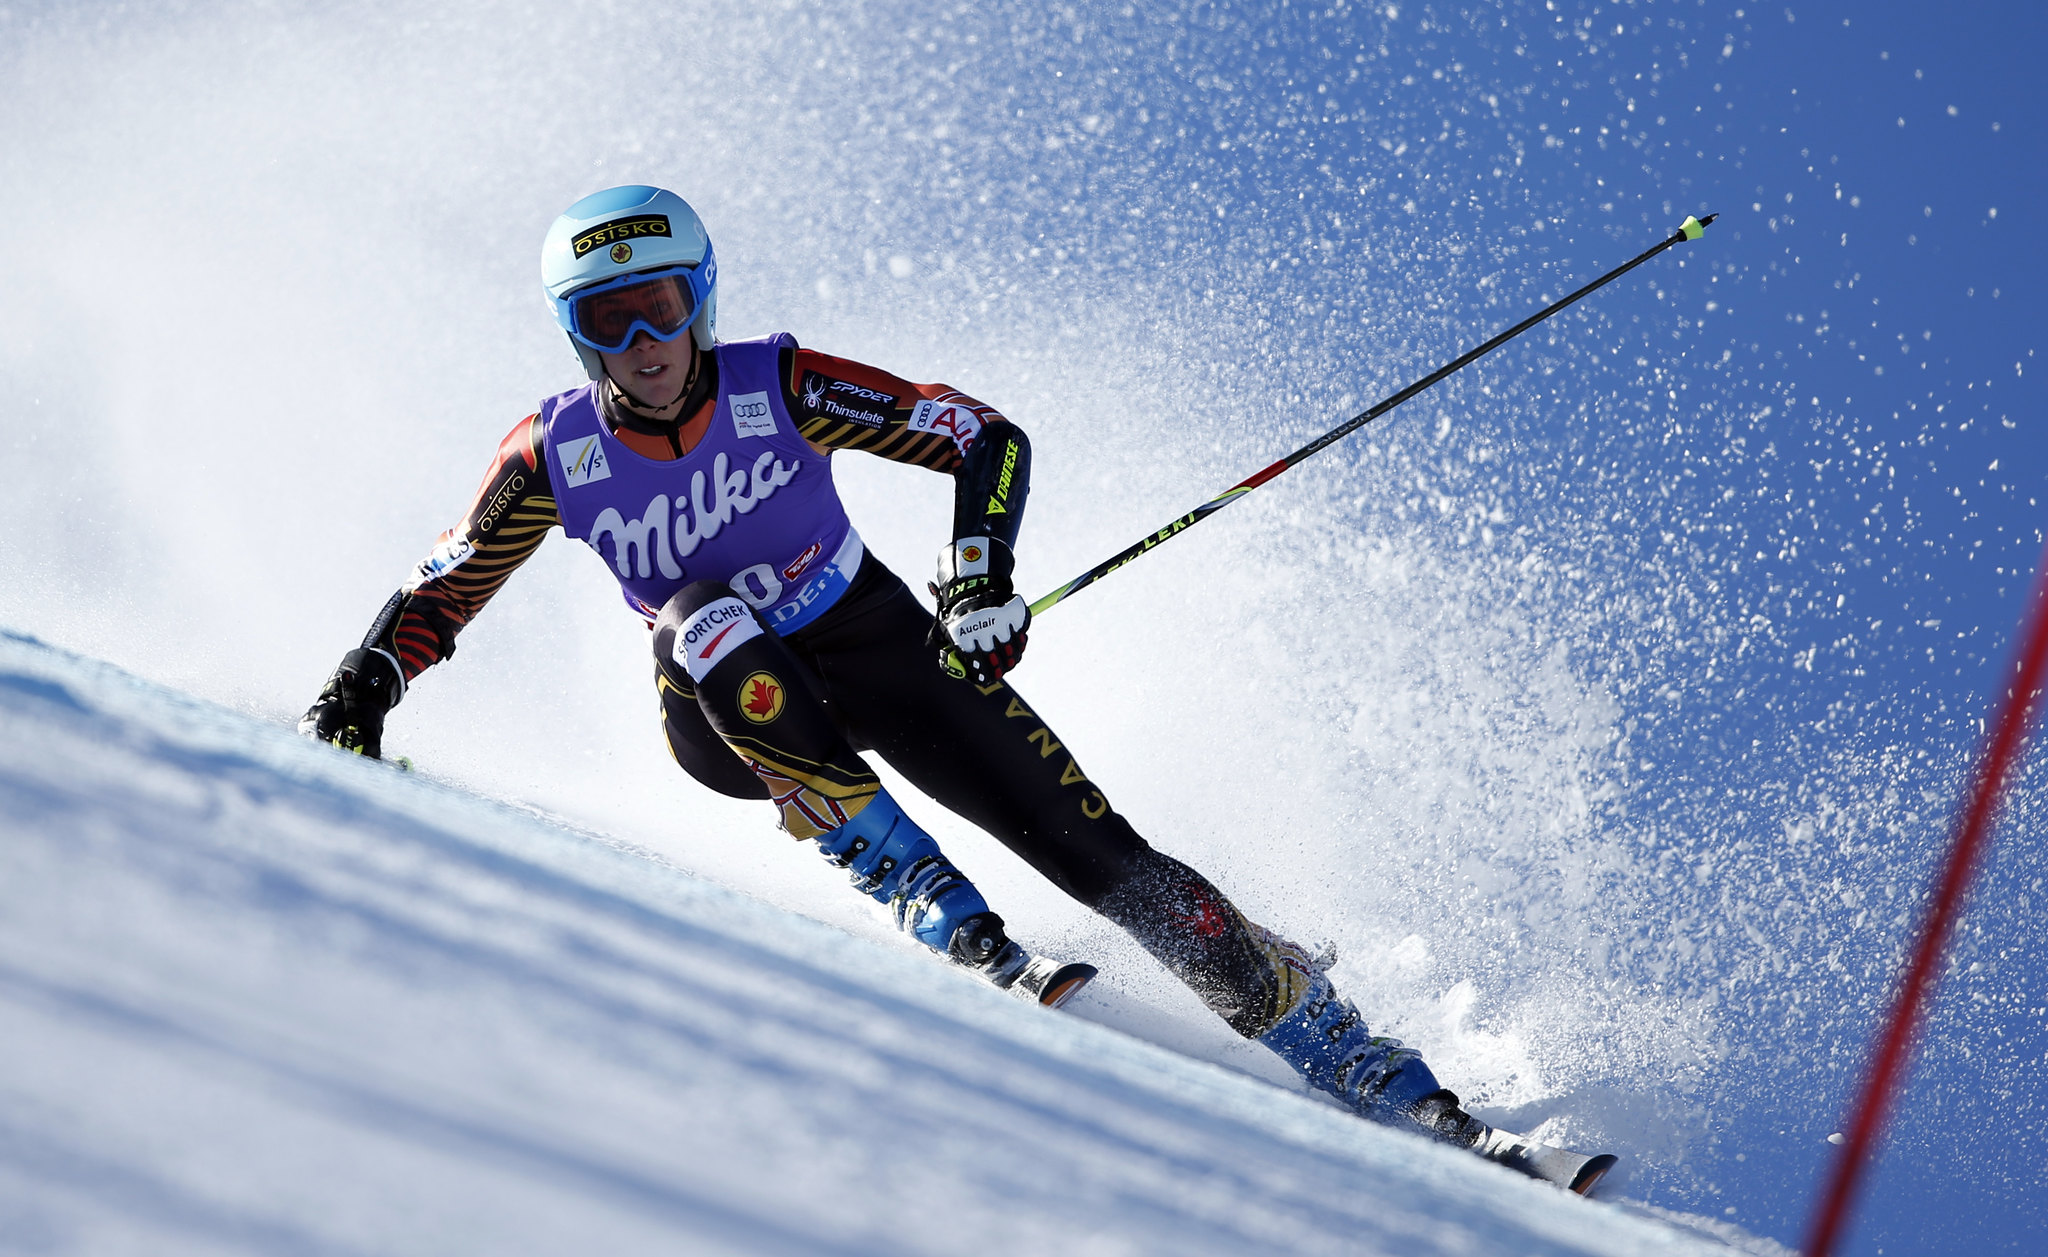 Gagnon kicks up some spray in Solden, AUT during the first giant slalom event of the season.